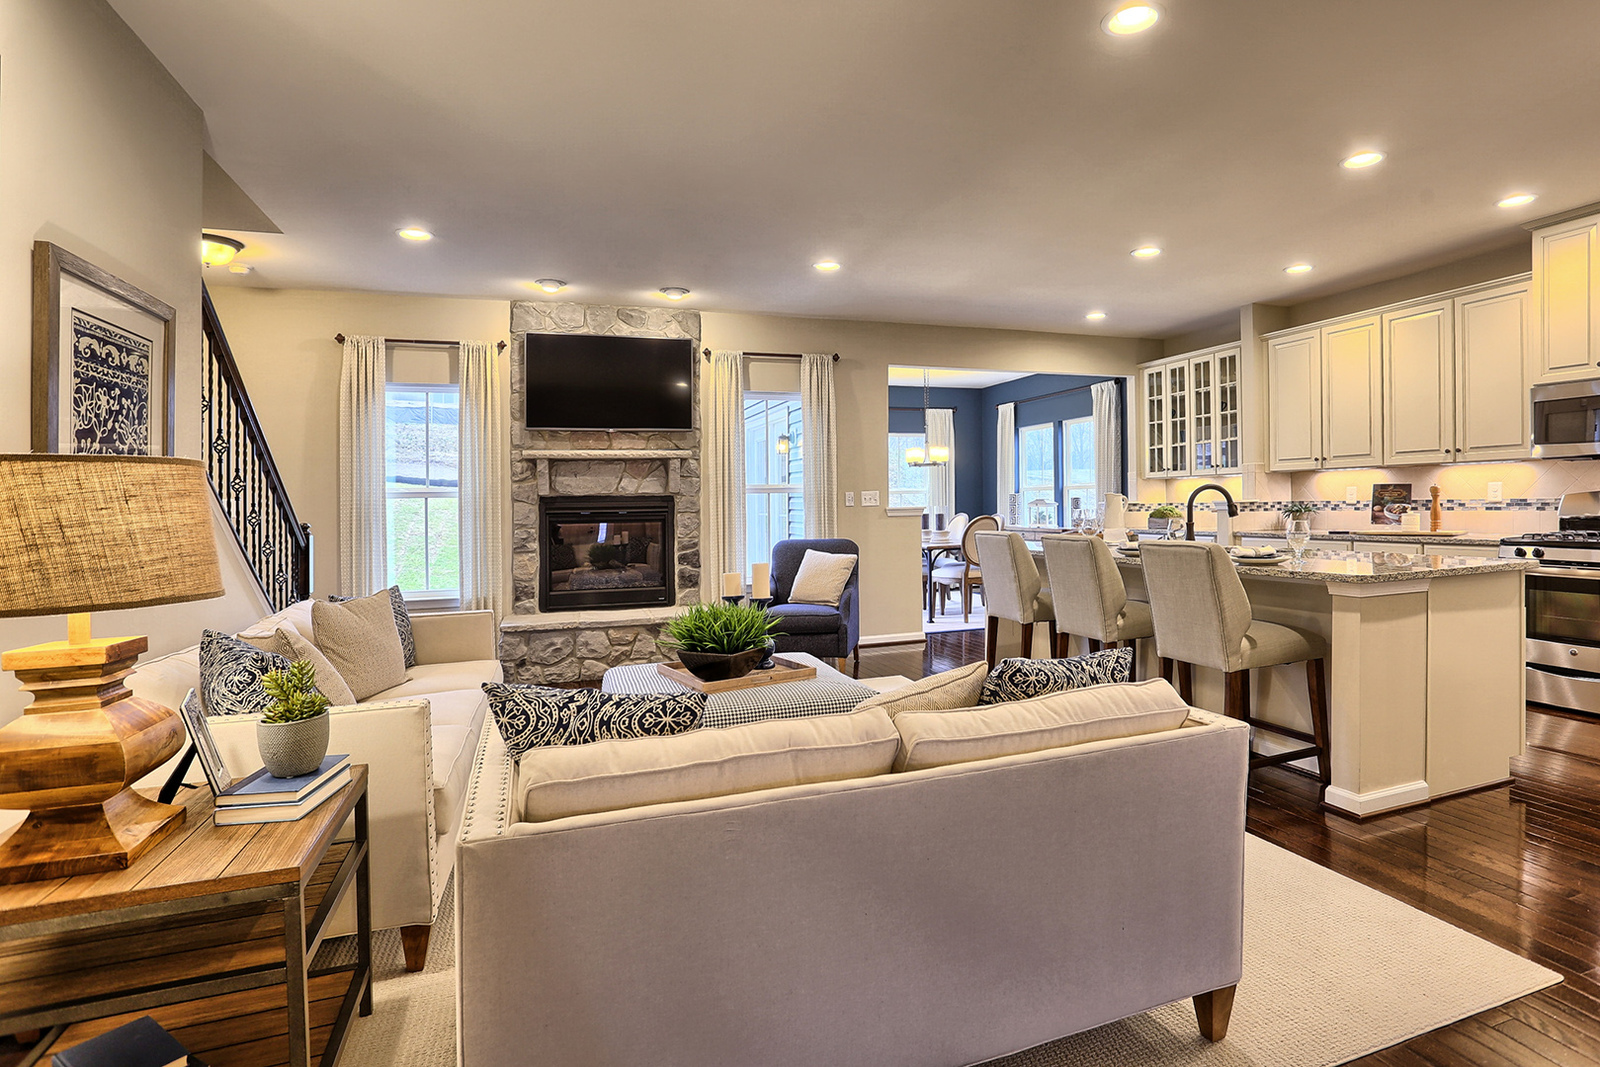 New Homes For Sale At Fork Landing In Milford De Within